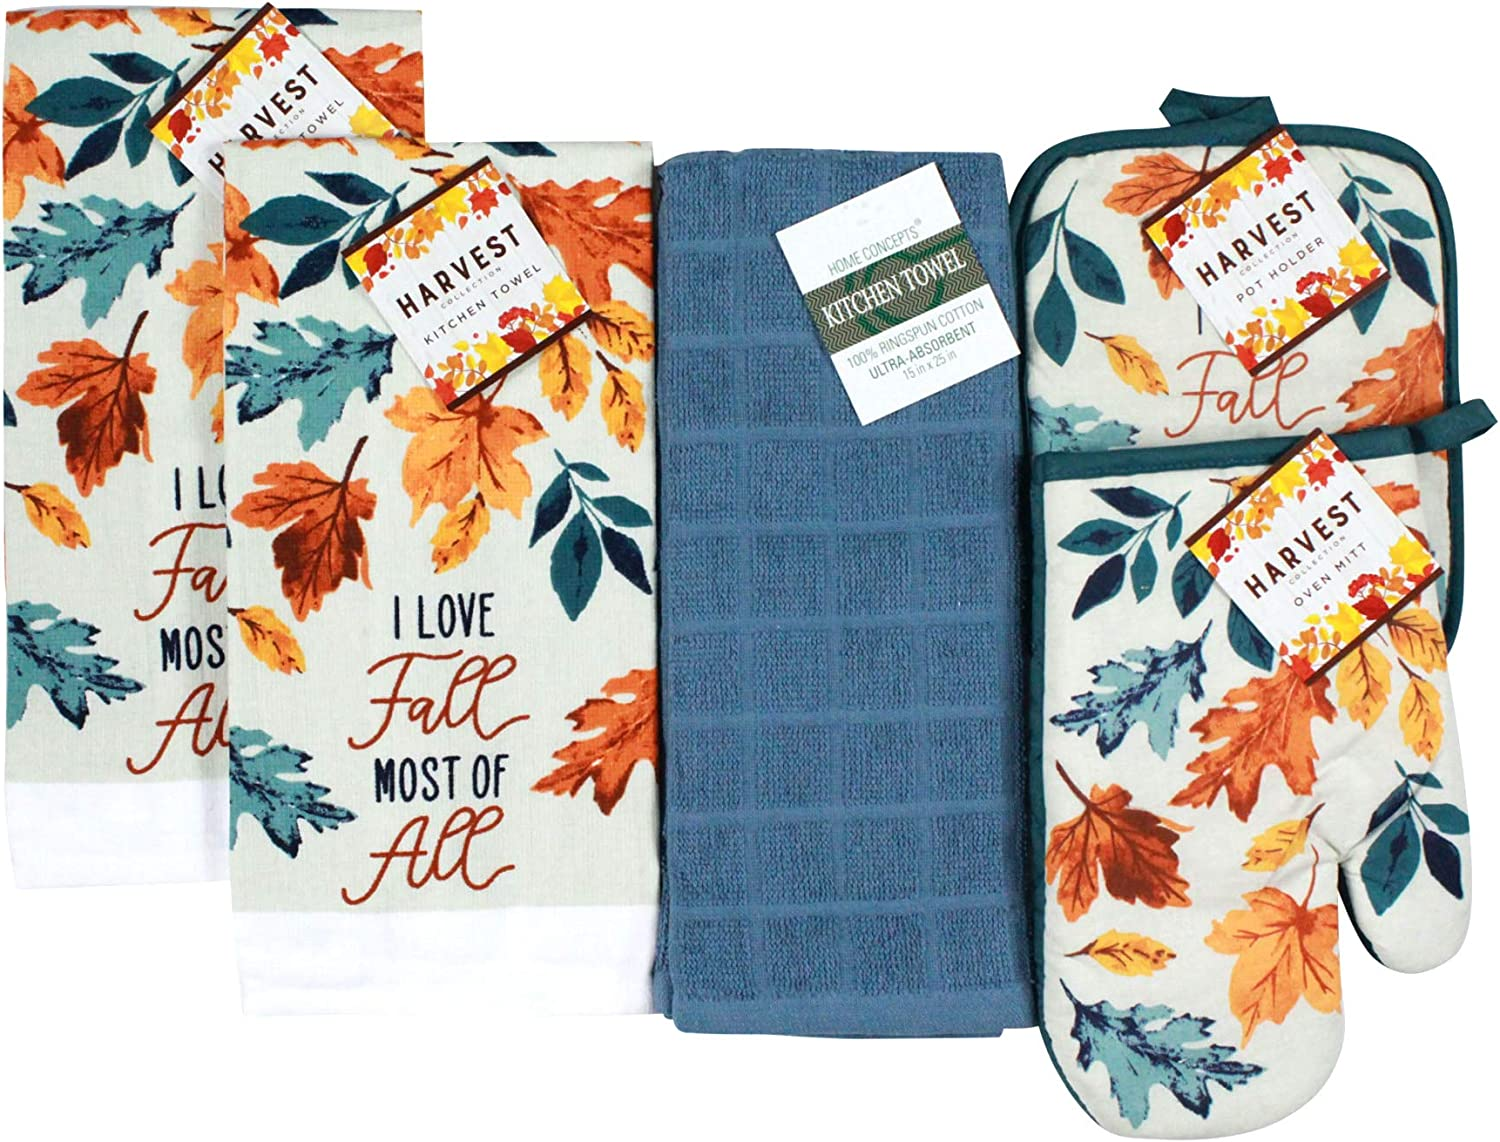 Nantucket Home Love Fall Fun Kitchen Dish Towels Pot Holder Oven Mitt Set, 4pc: Colorful Autumn Leaves of Orange, Yellow, and Teal on Beige Background.